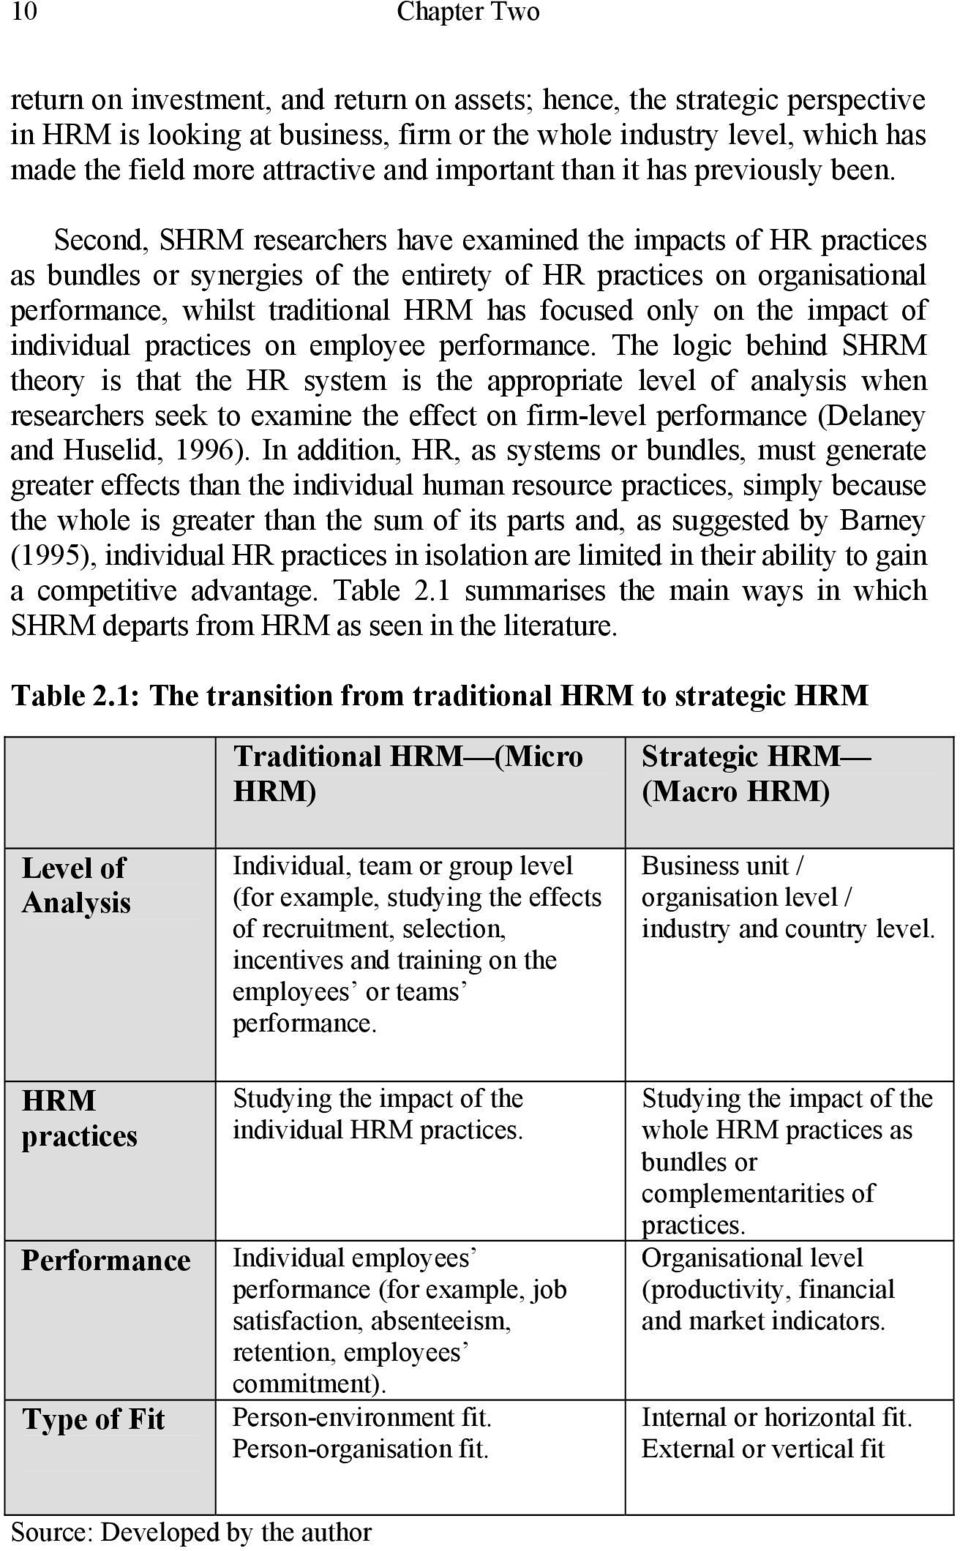 Second, SHRM researchers have examined the impacts of HR practices as bundles or synergies of the entirety of HR practices on organisational performance, whilst traditional HRM has focused only on